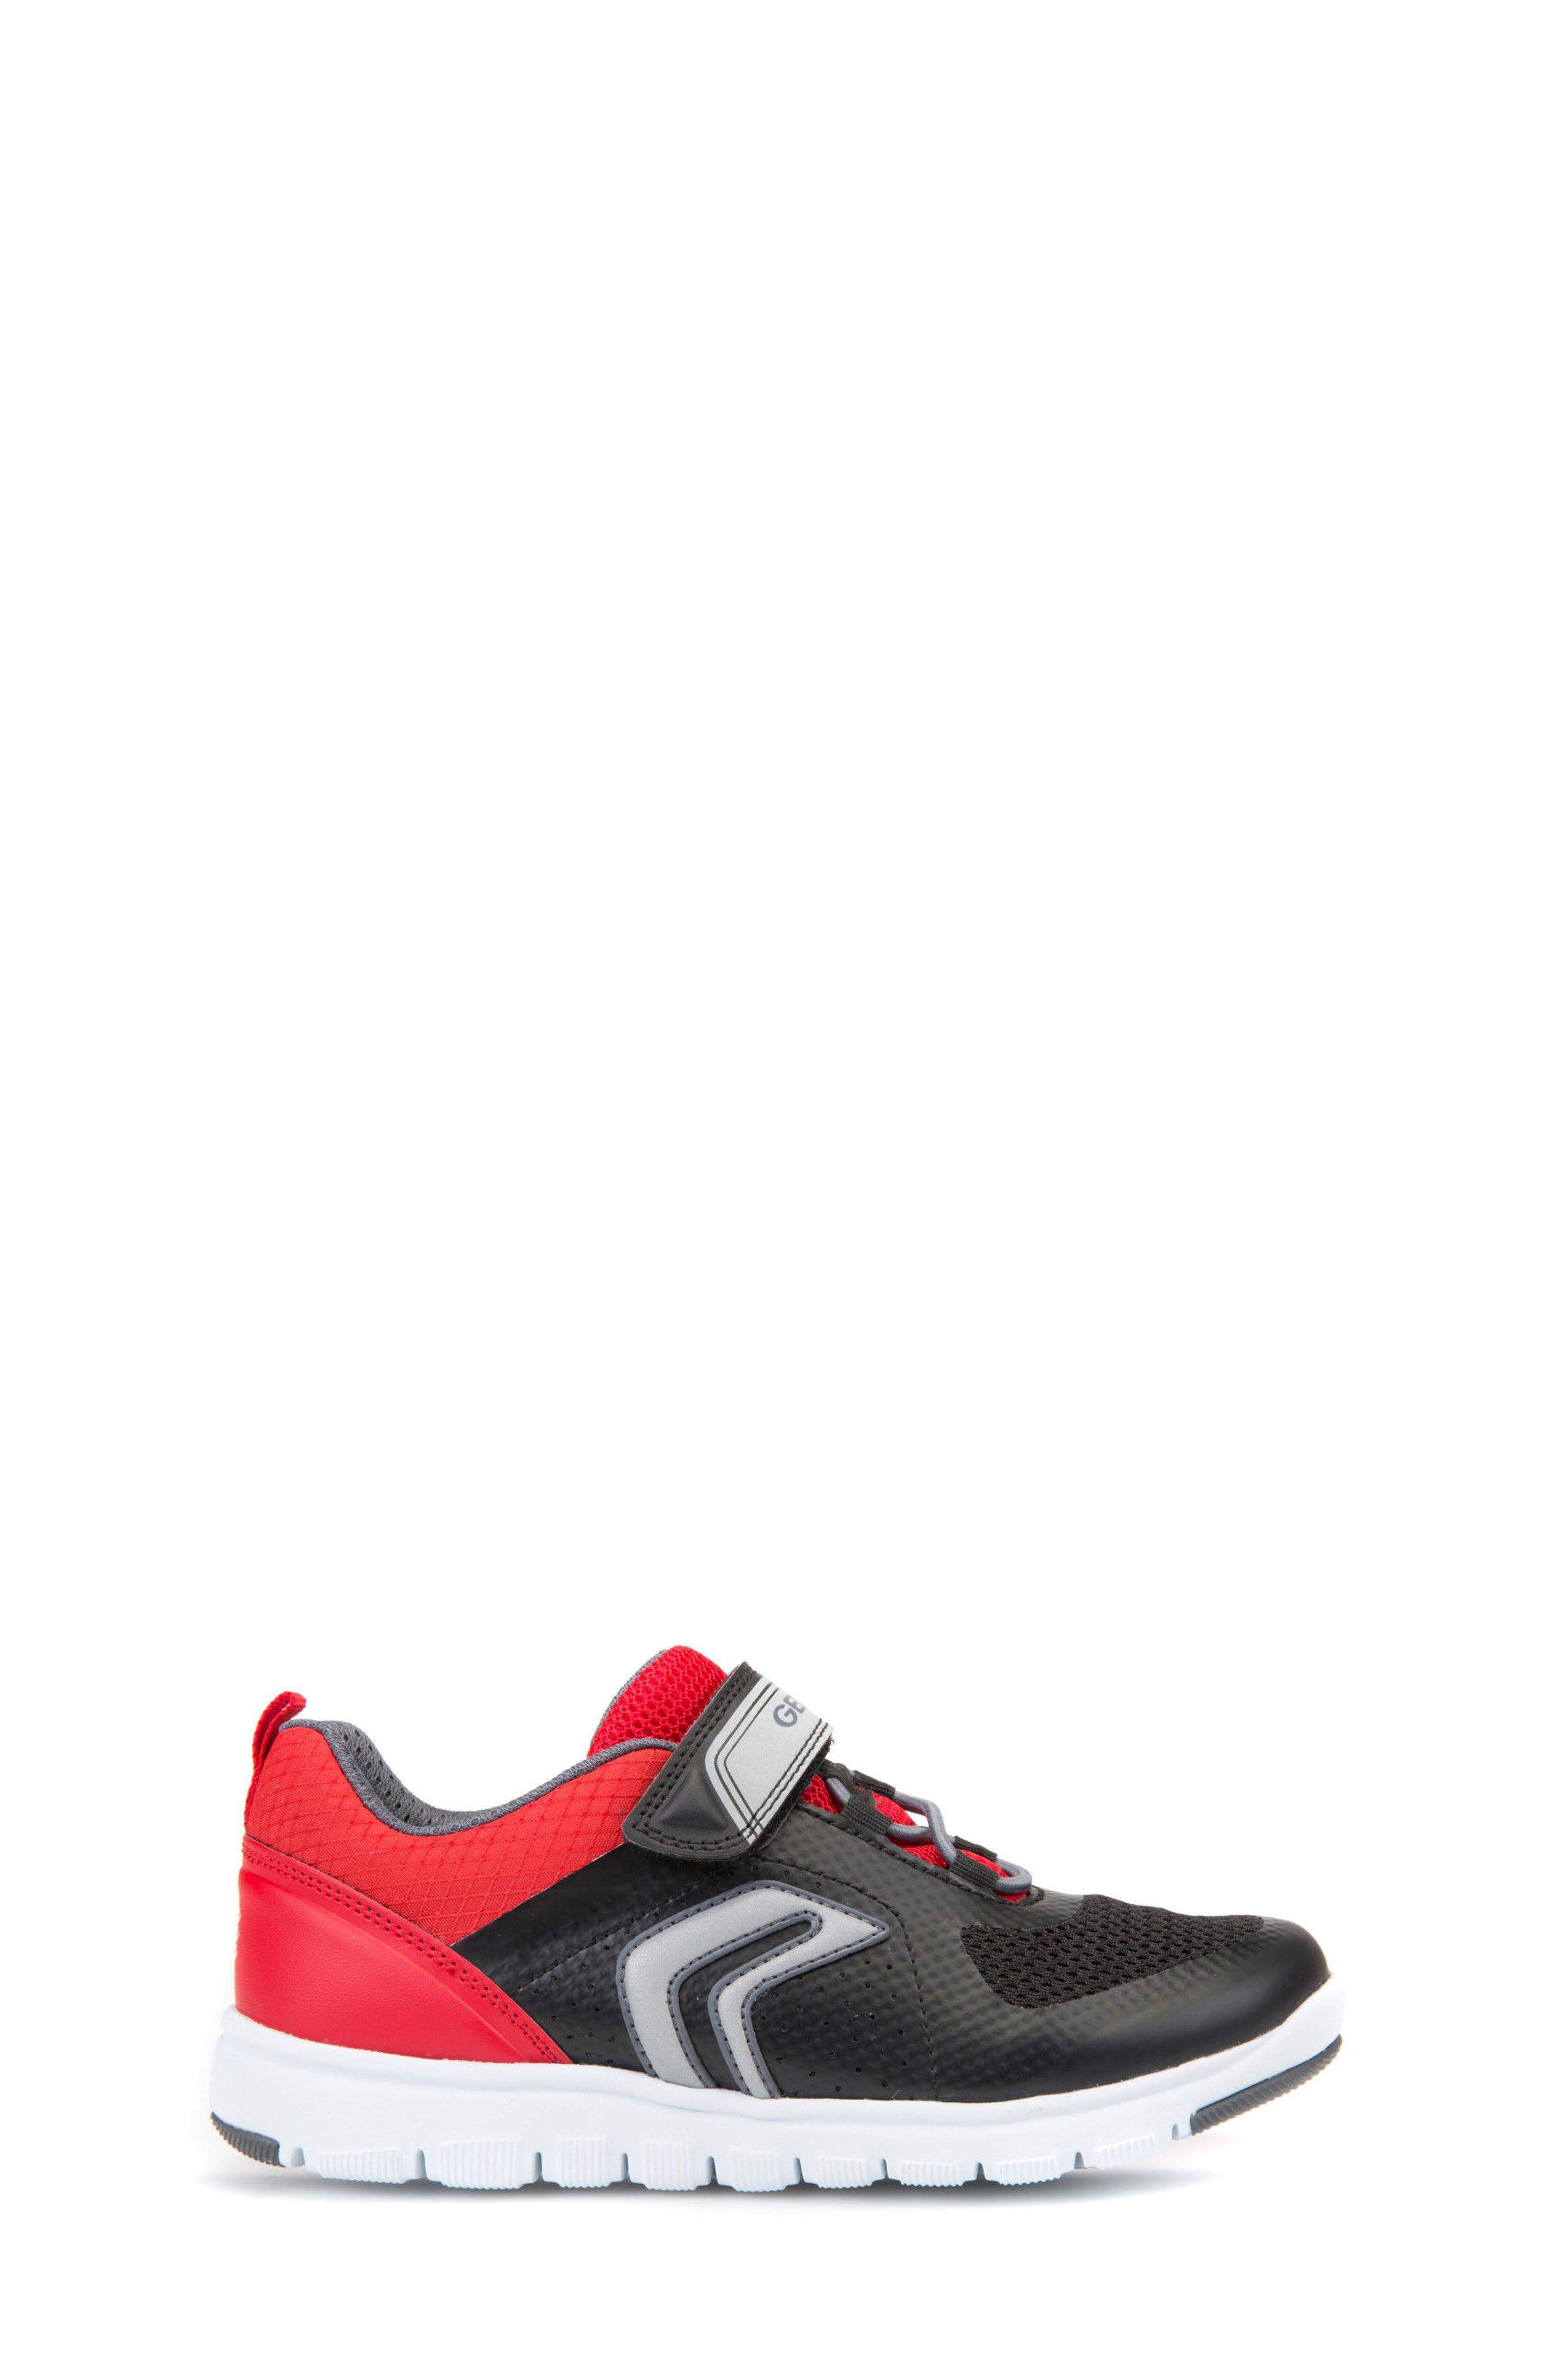 Xunday Low Top Sneaker,                             Alternate thumbnail 3, color,                             Black/ Red